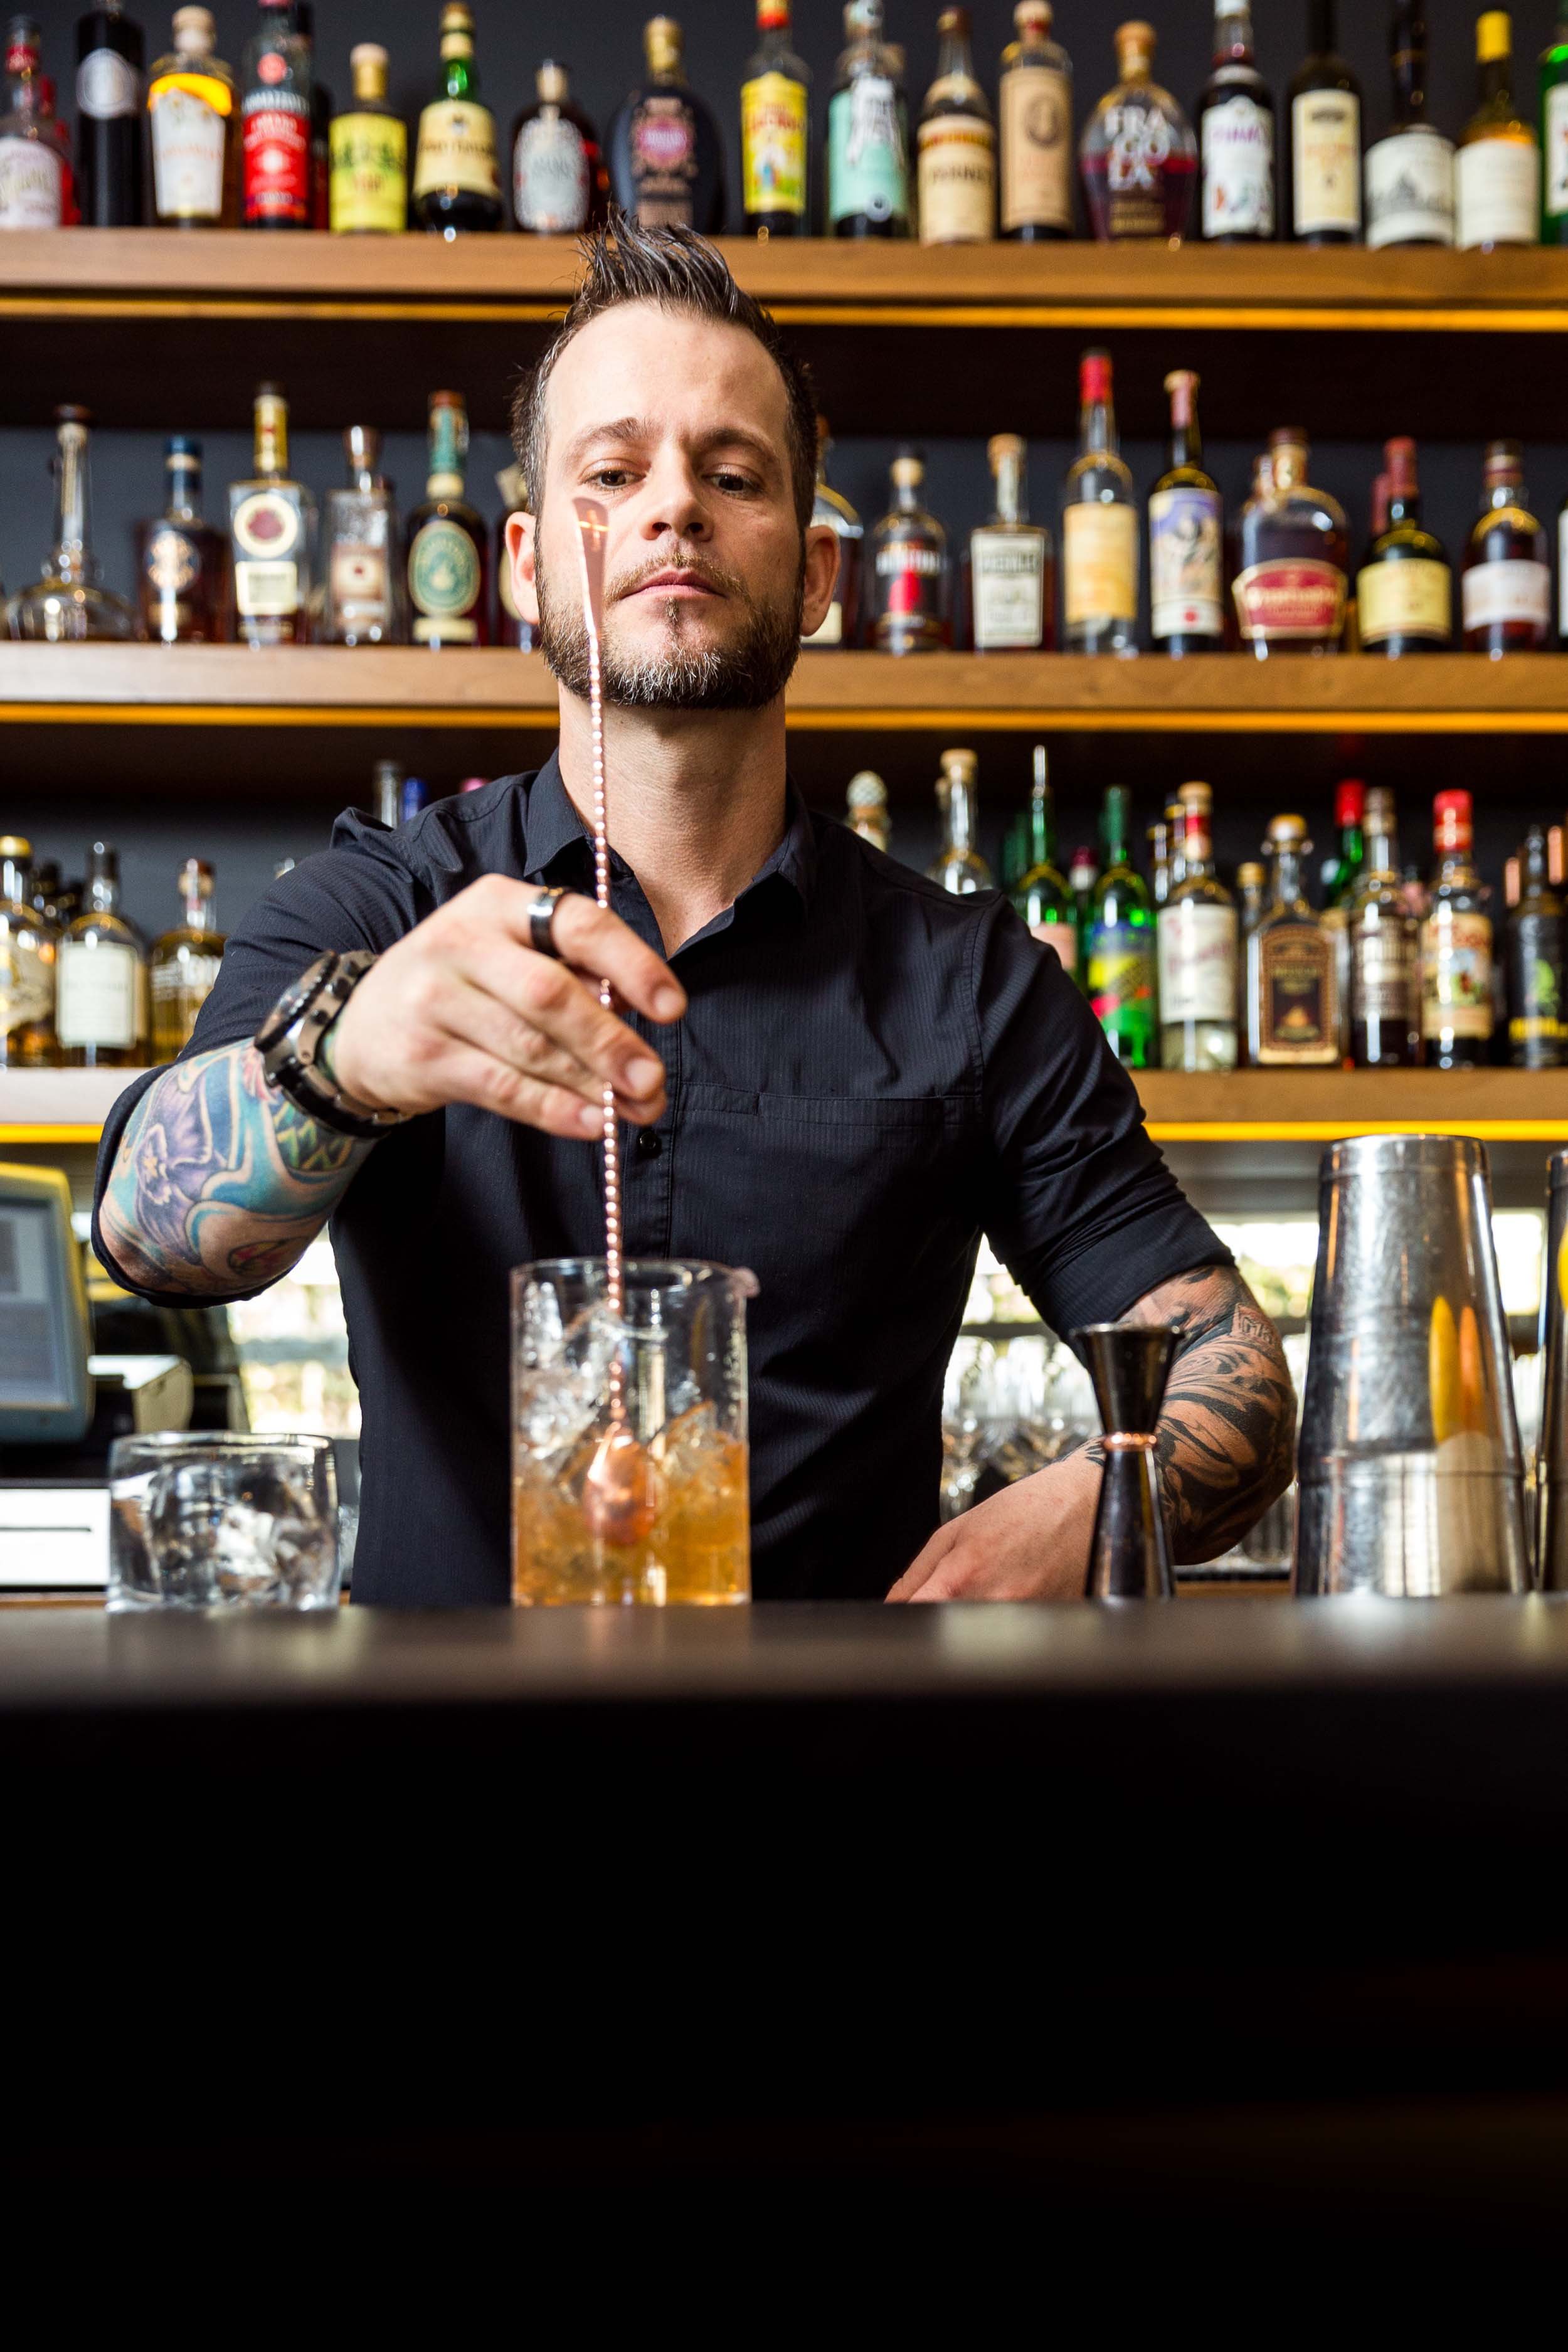 Diablo Magazine - cocktails and bartenders in the East Bay.